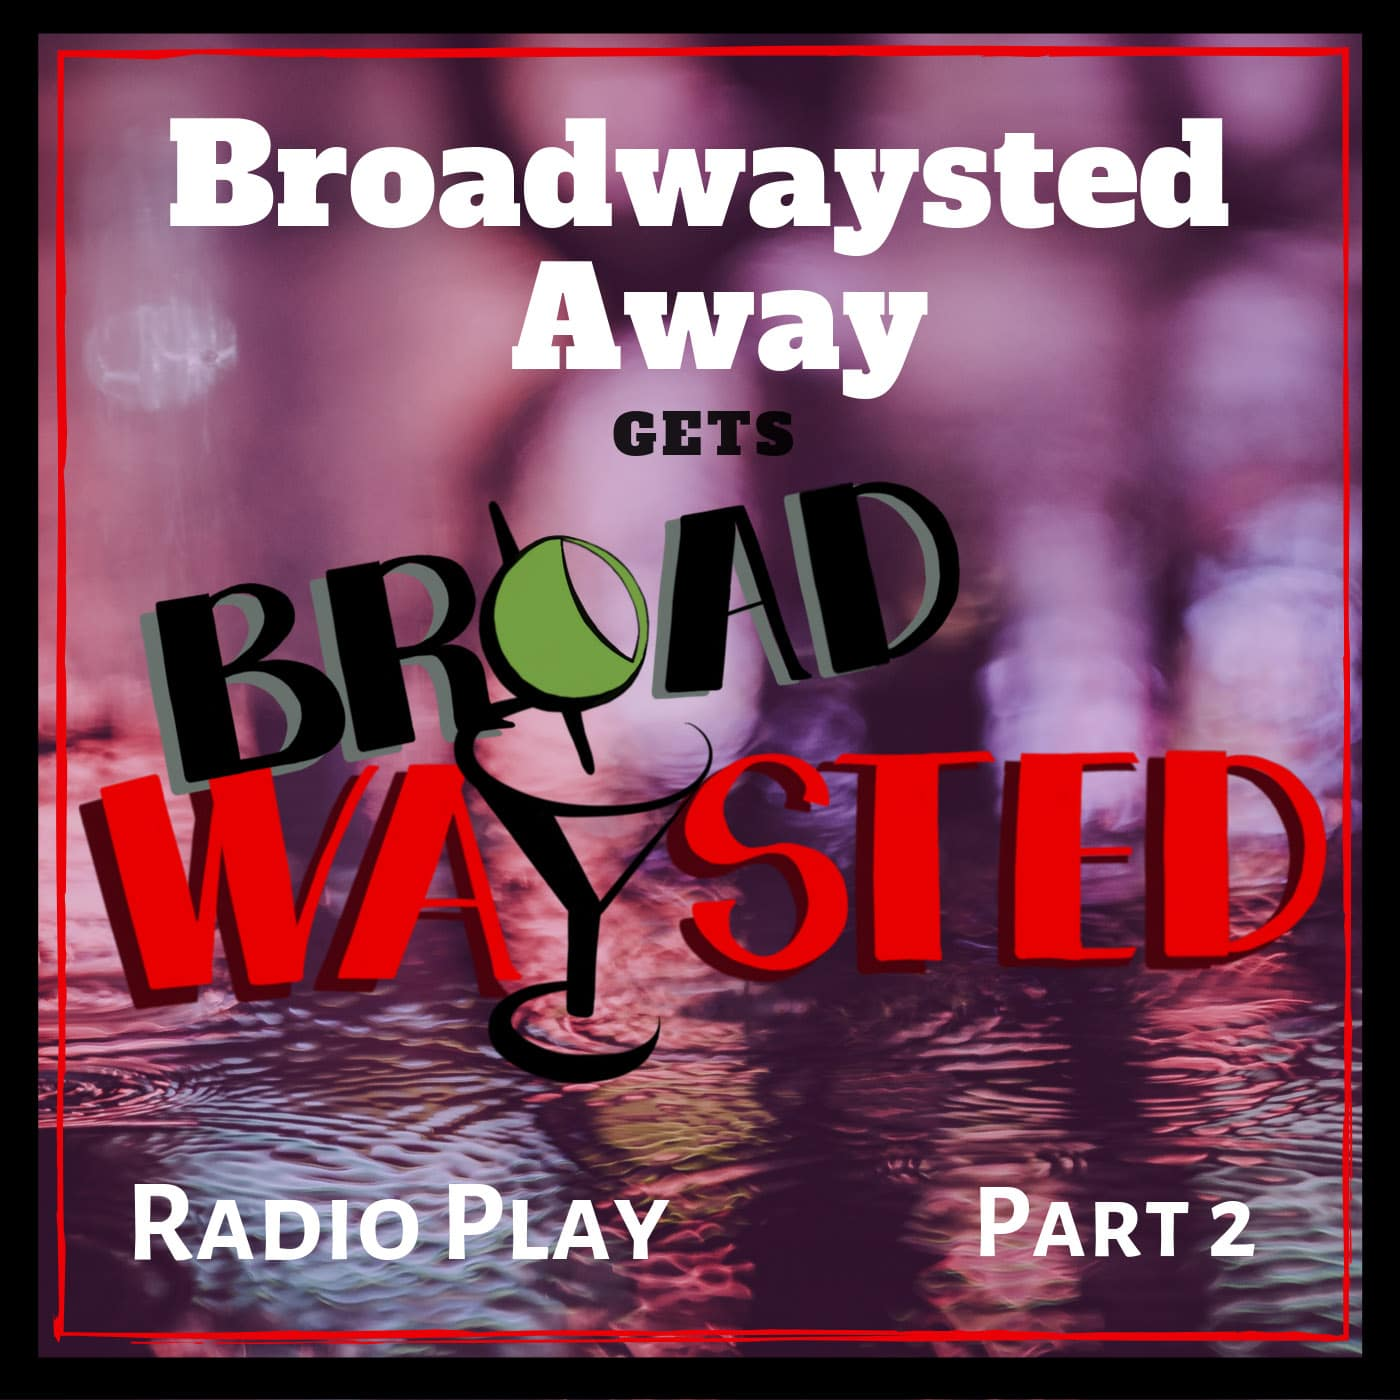 Broadwaysted Away Parts (1)